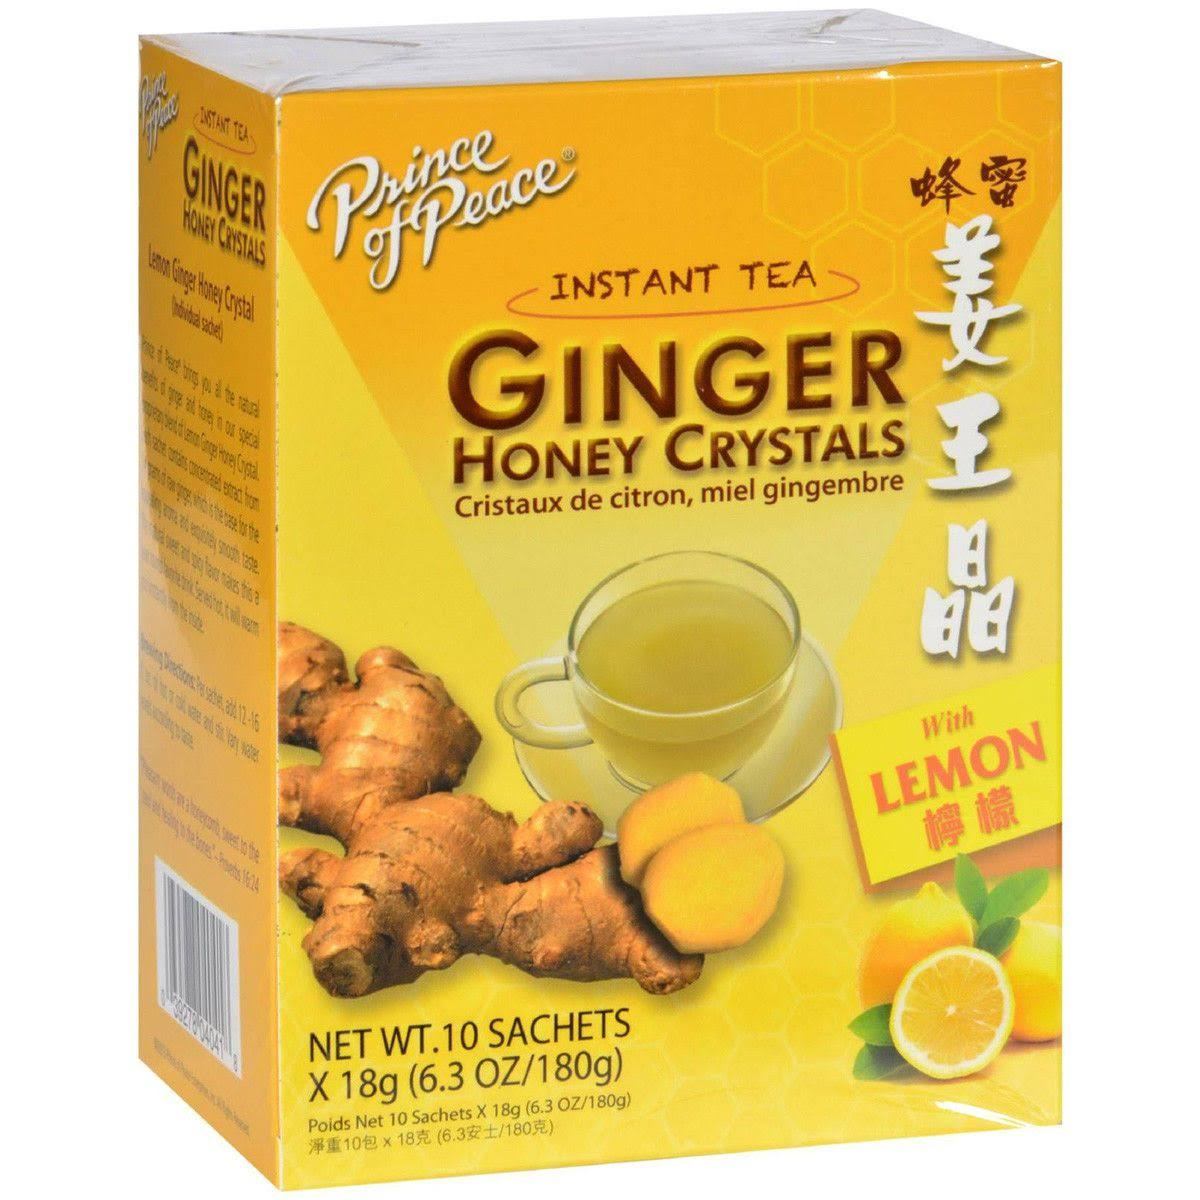 Prince Of Peace Ginger Honey Crystals with Lemon Instant Tea - 10 sachets